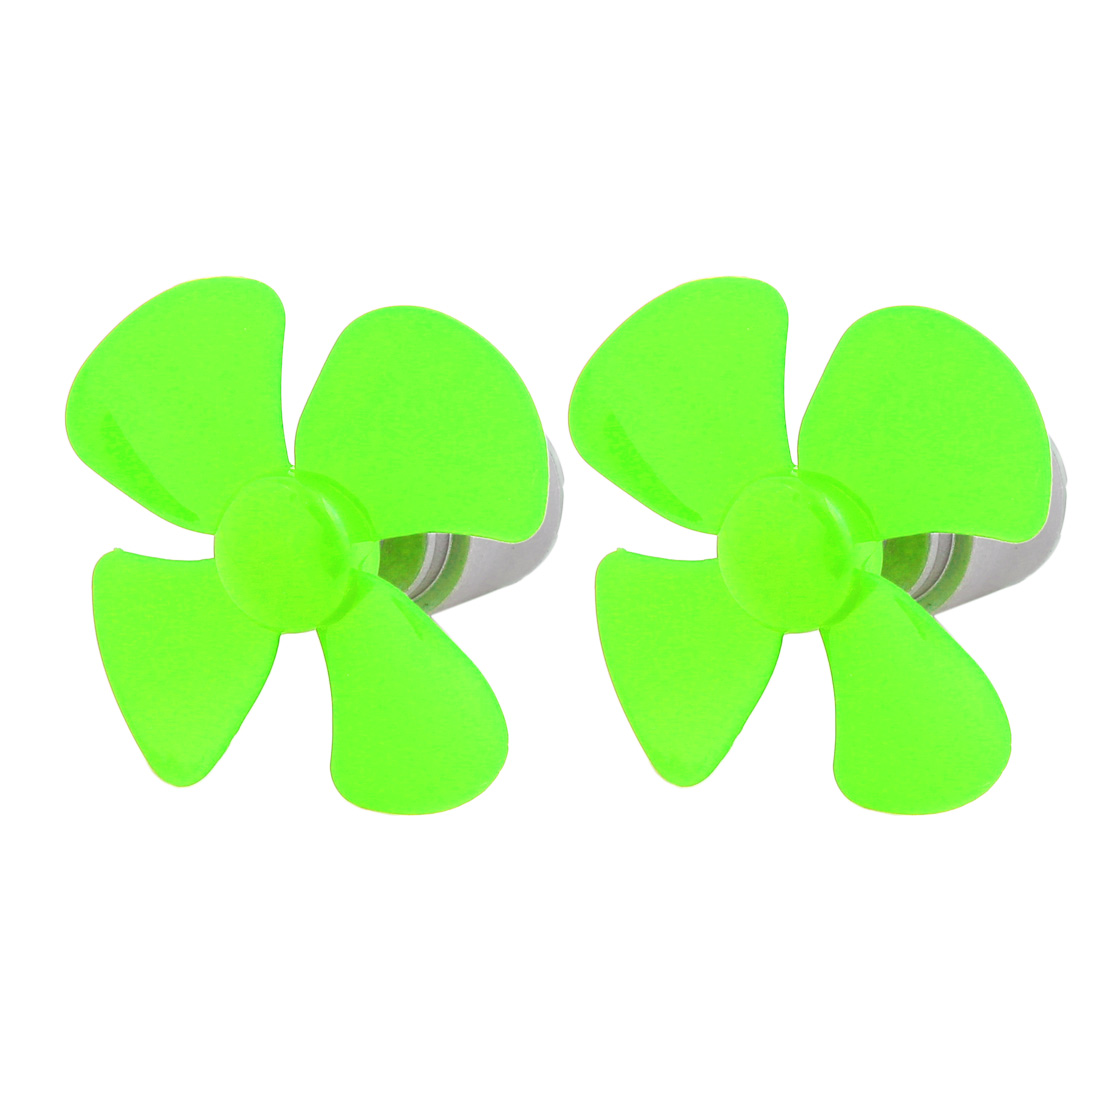 2pcs DC 3V 0.13A 6600RPM Green Strong Force Motor 4 Vanes 56mm Dia Propeller for RC Aircraft